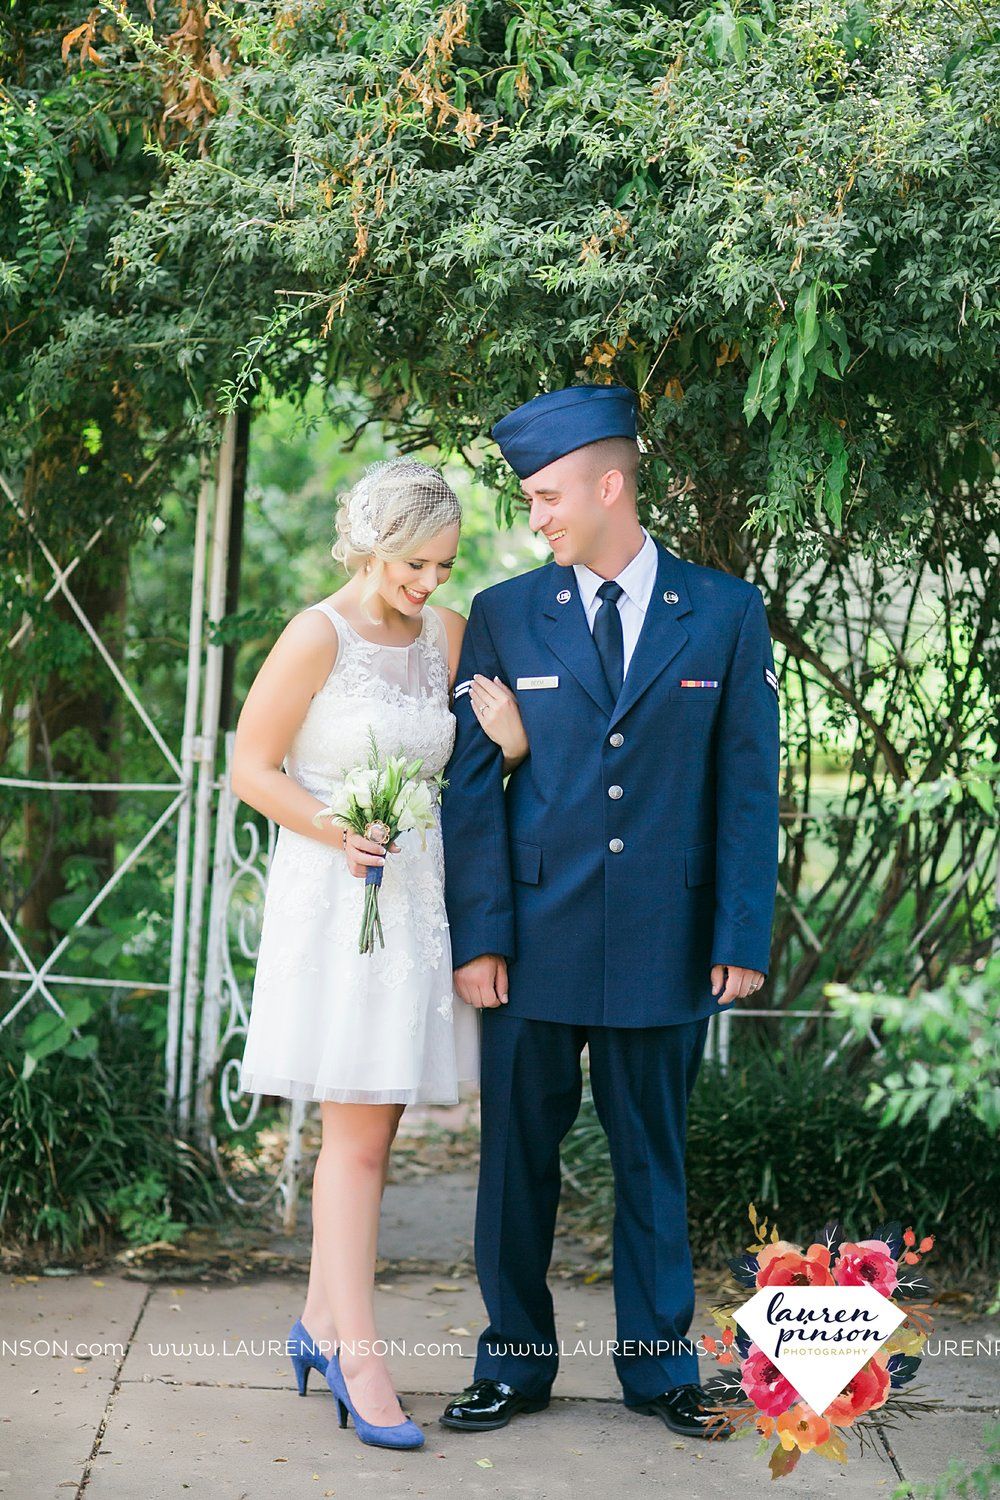 sheppard-afb-wichita-falls-texas-elopement-courthouse-wedding-photographer-justice-of-the-peace-judge-little-ceremony_3284.jpg